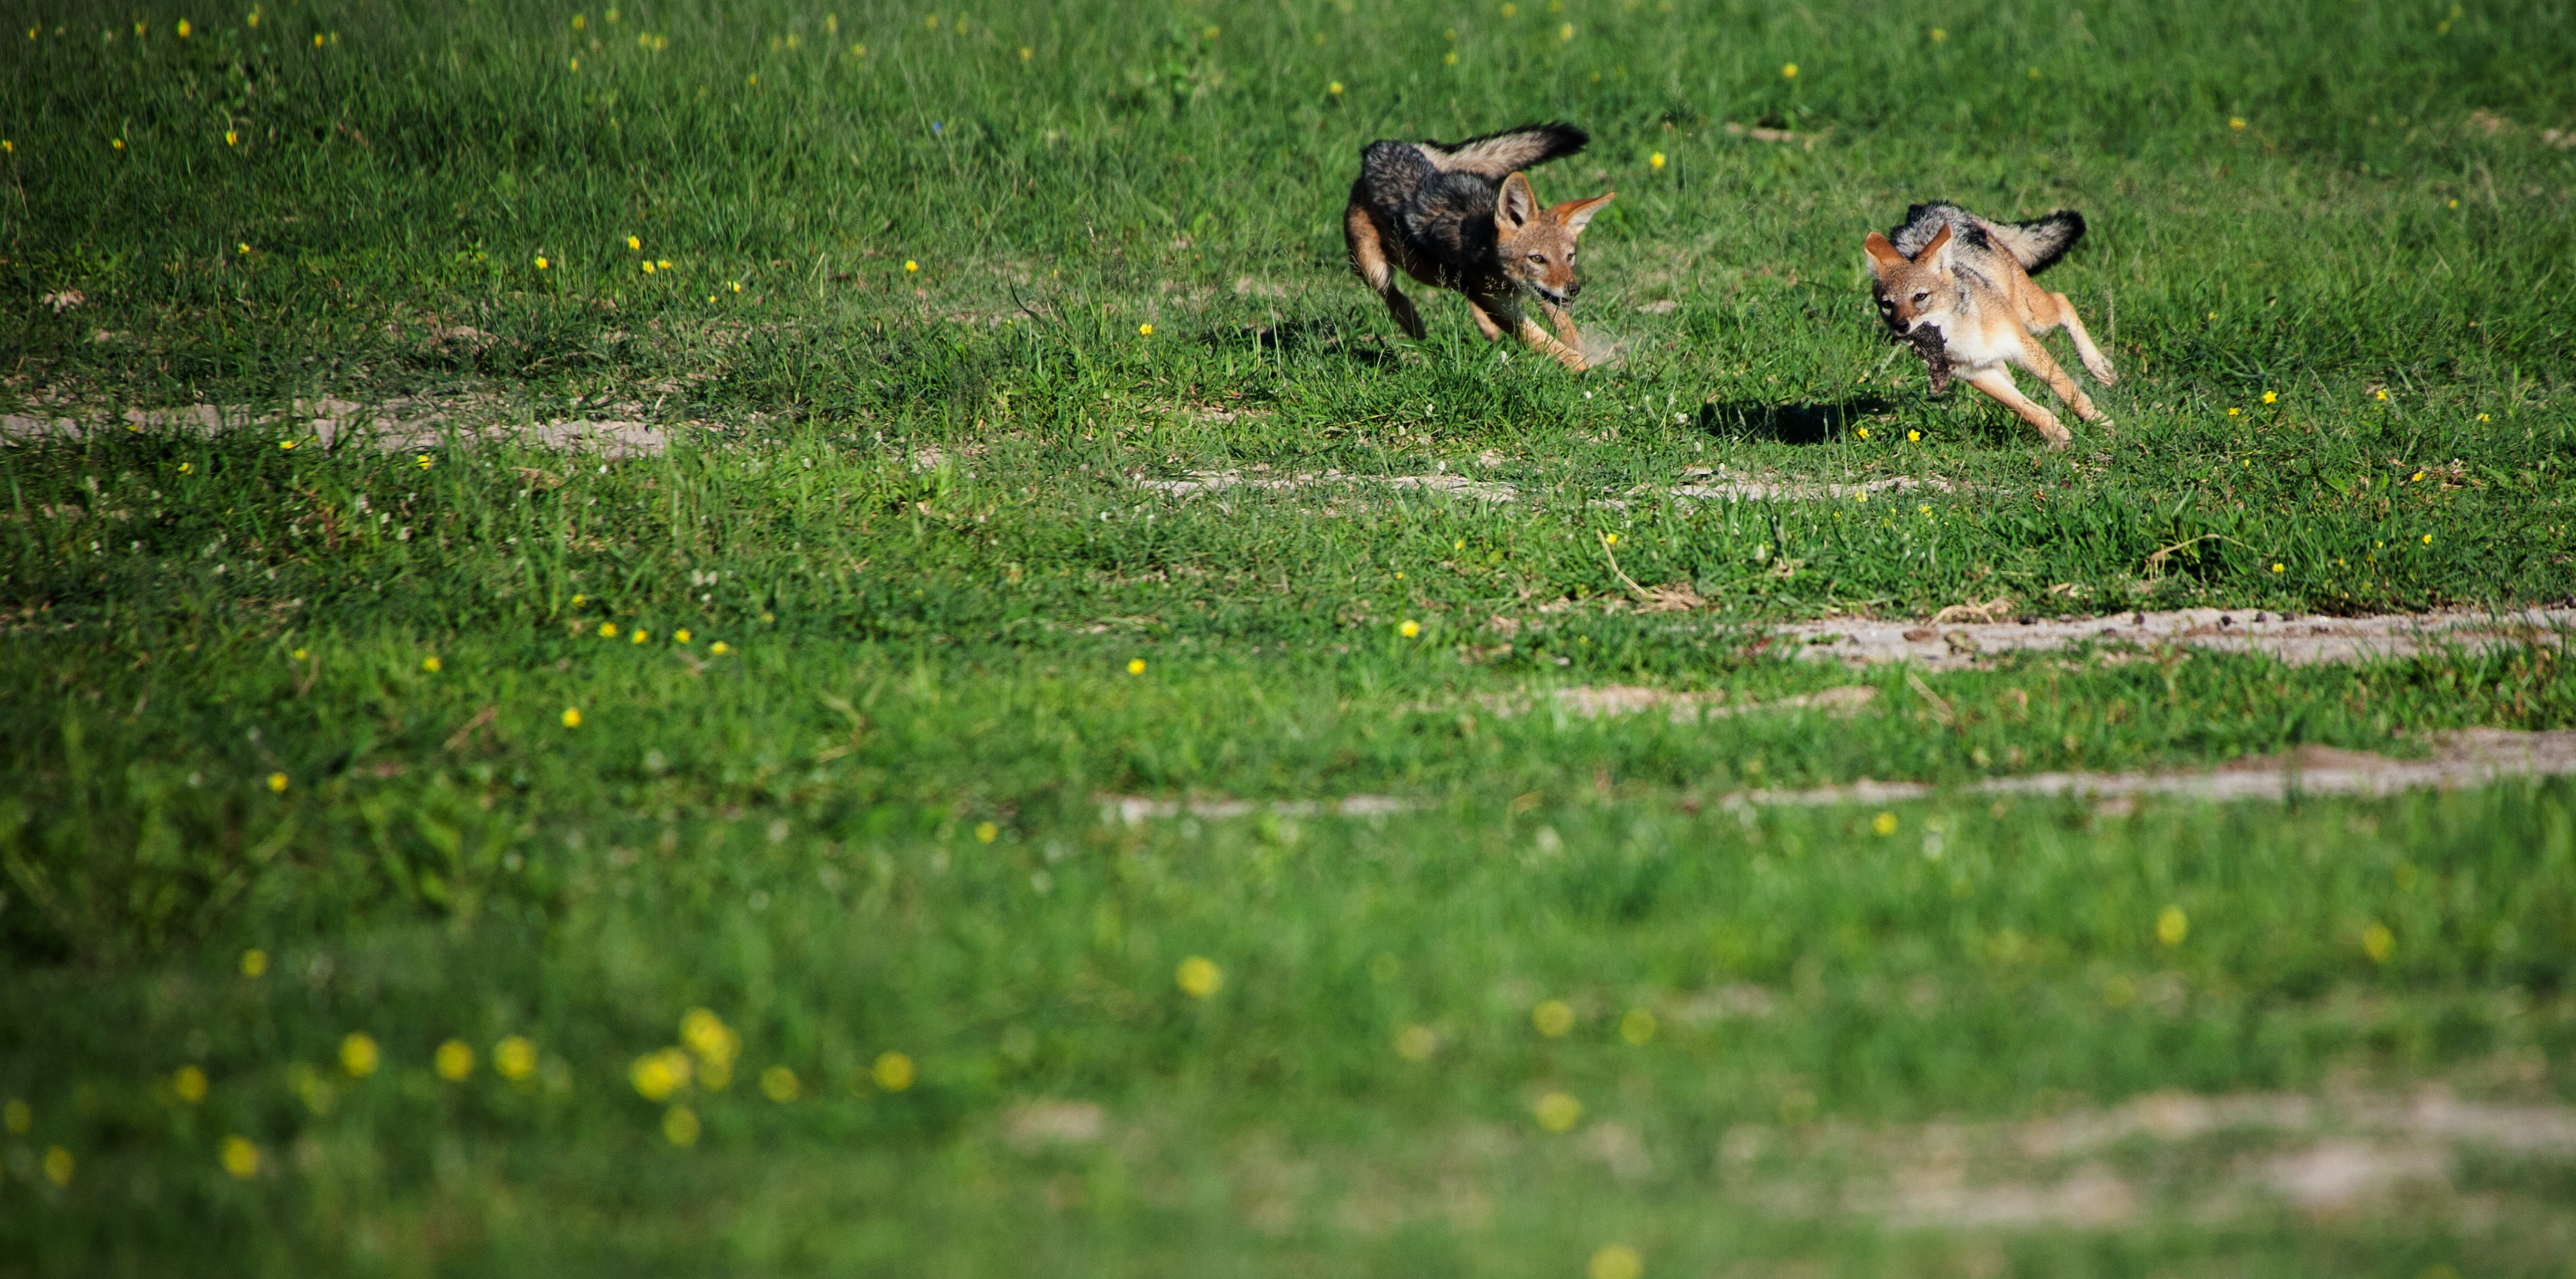 CM Travels: Jackal Chase | Wildlife Photography